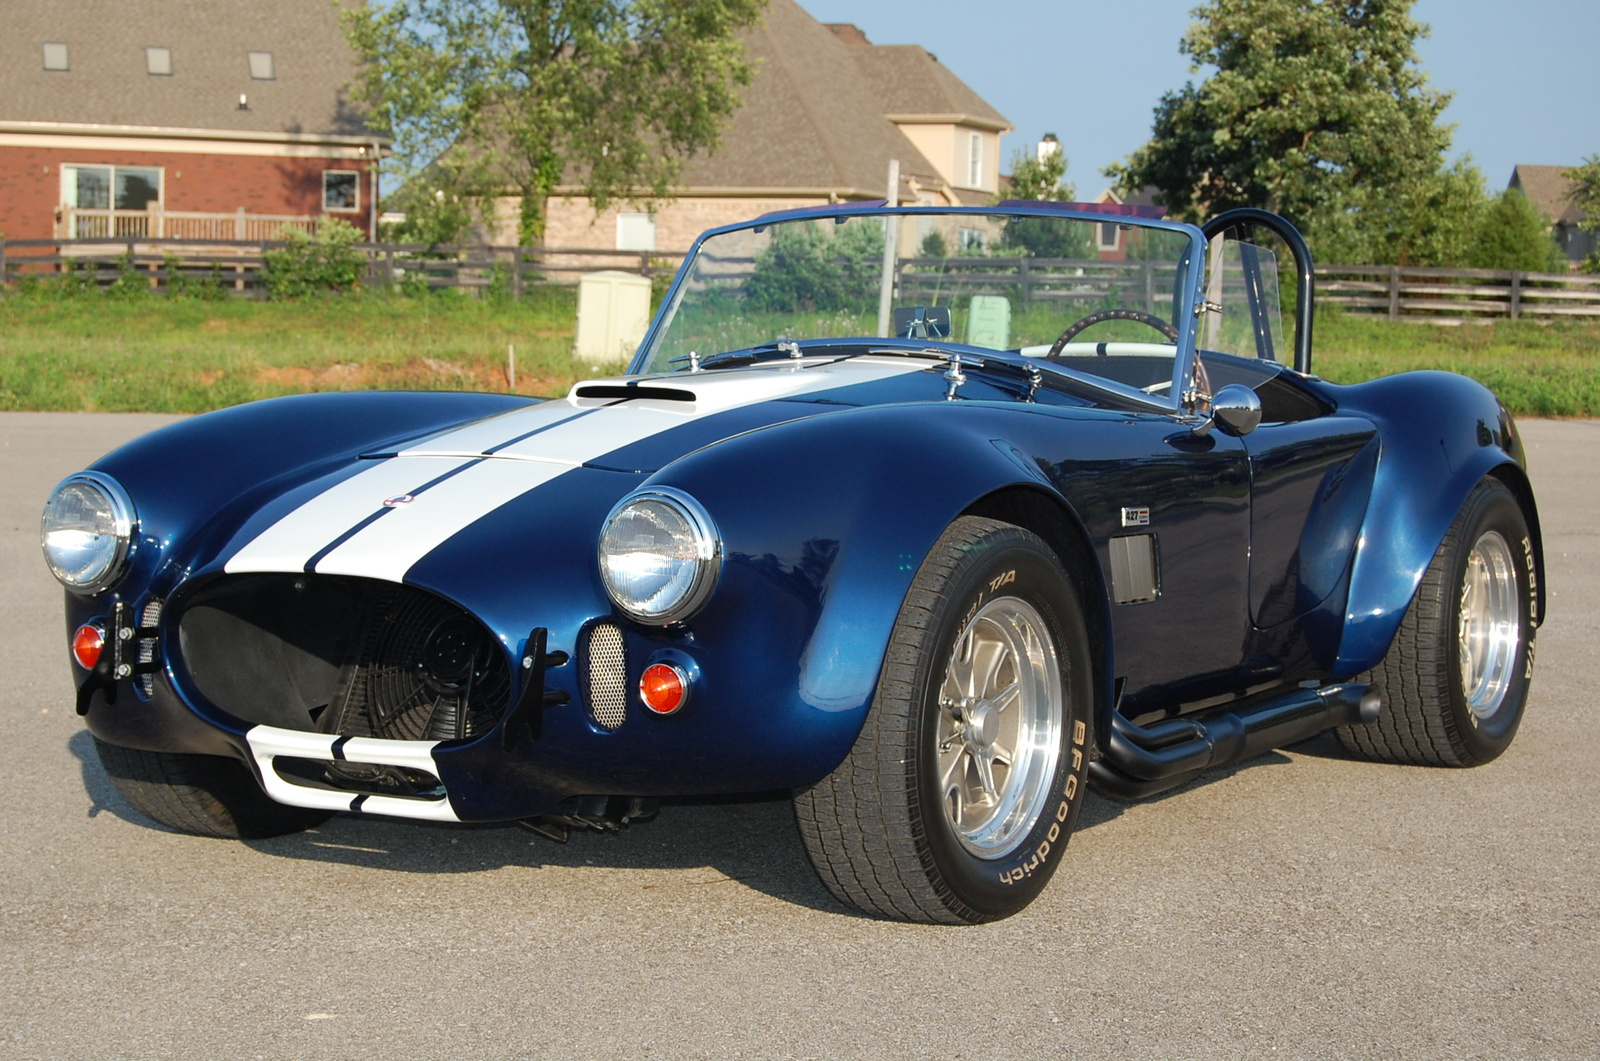 Shelby Cobra hot cars, enough said.